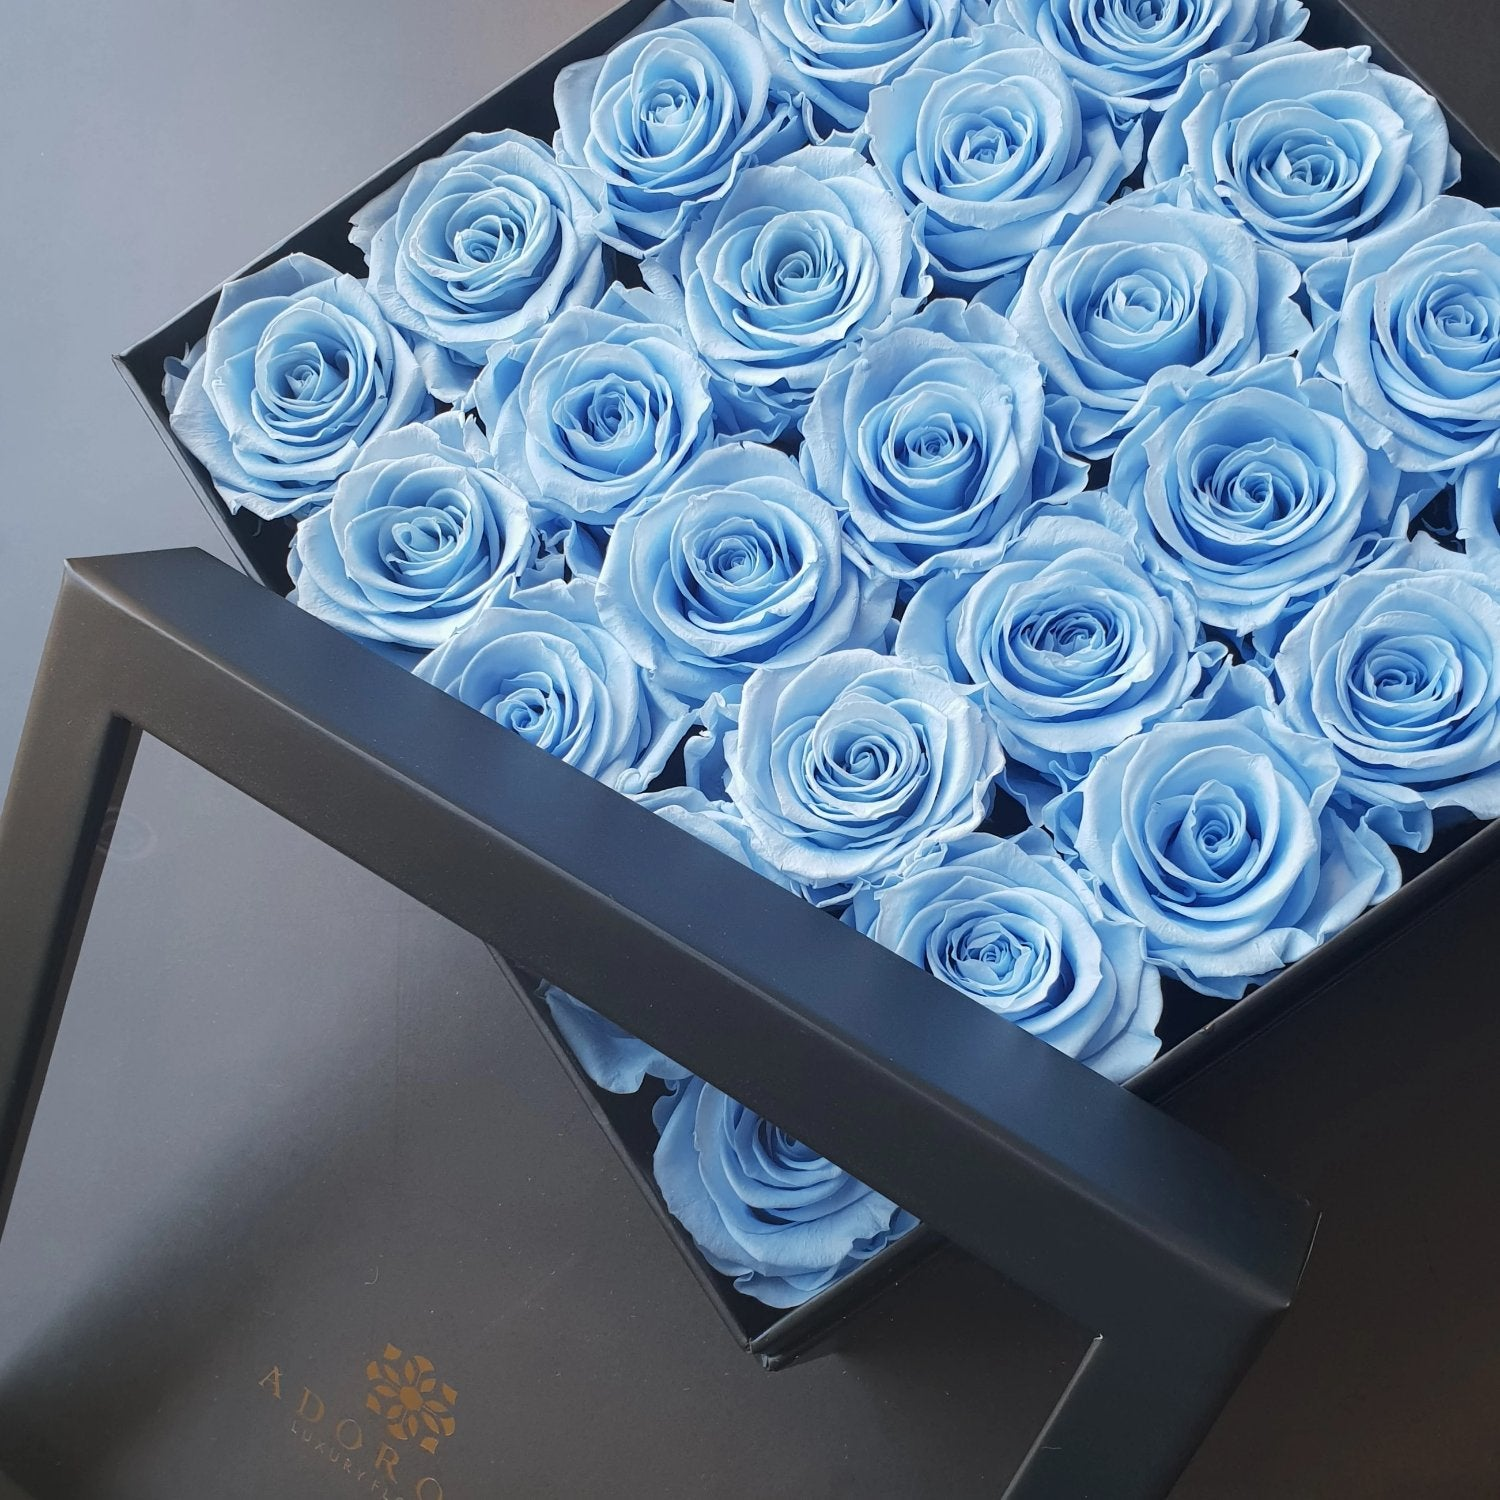 blue roses, long lasting roses, preserved roses, preserved flowers, rose box delivery sydney, rose delivery sydney, luxury rose delivery sydney, long lasting roses australia